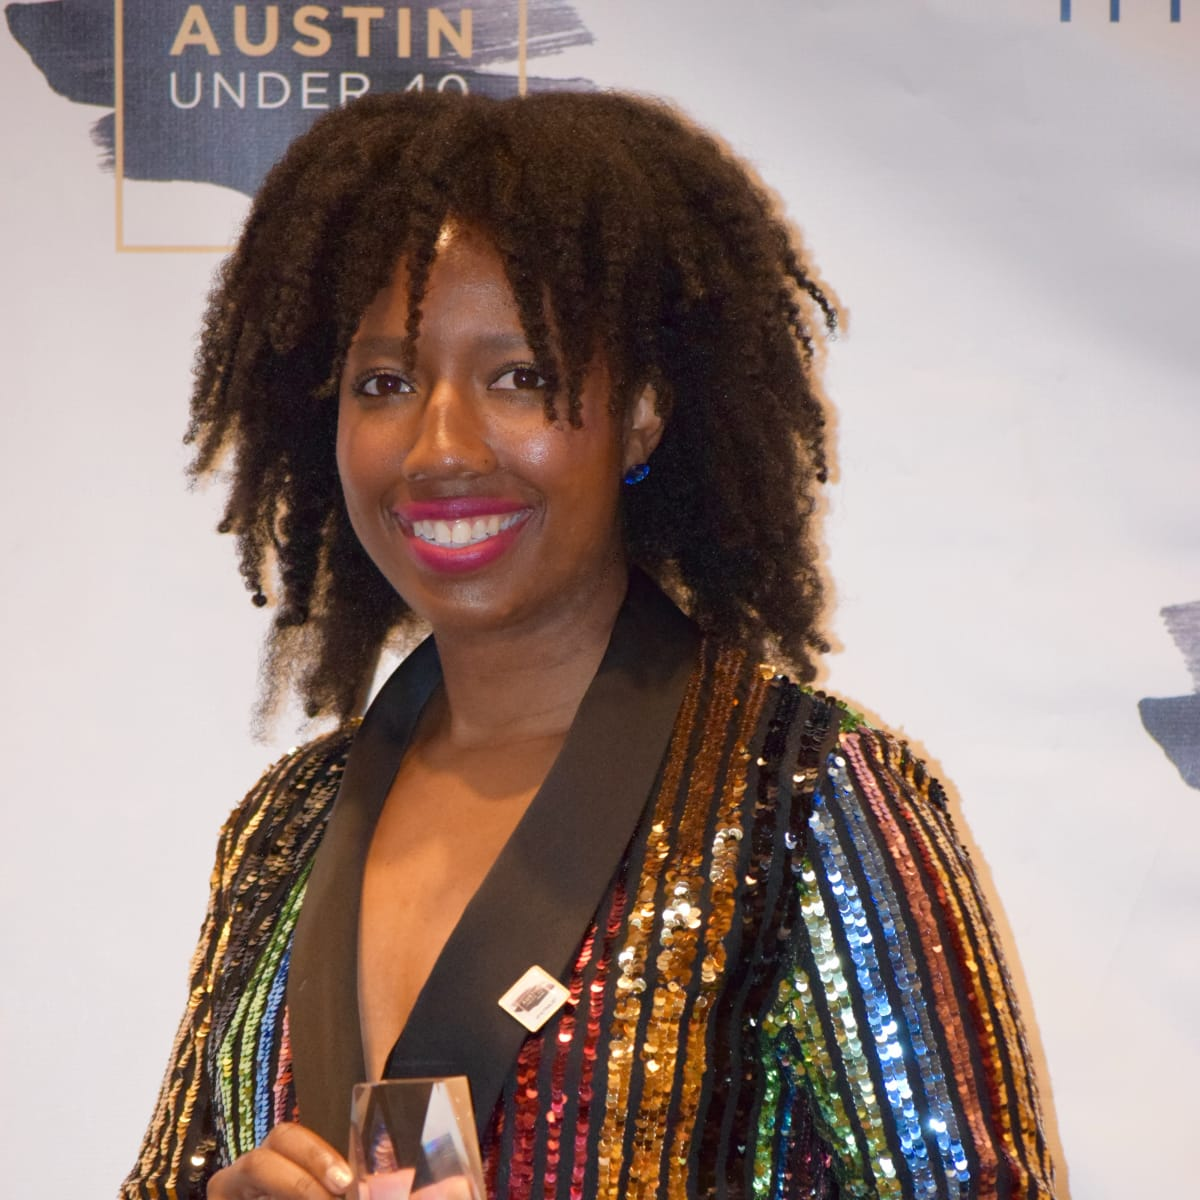 Virgina Cumberbatch Austin 40 Under 40